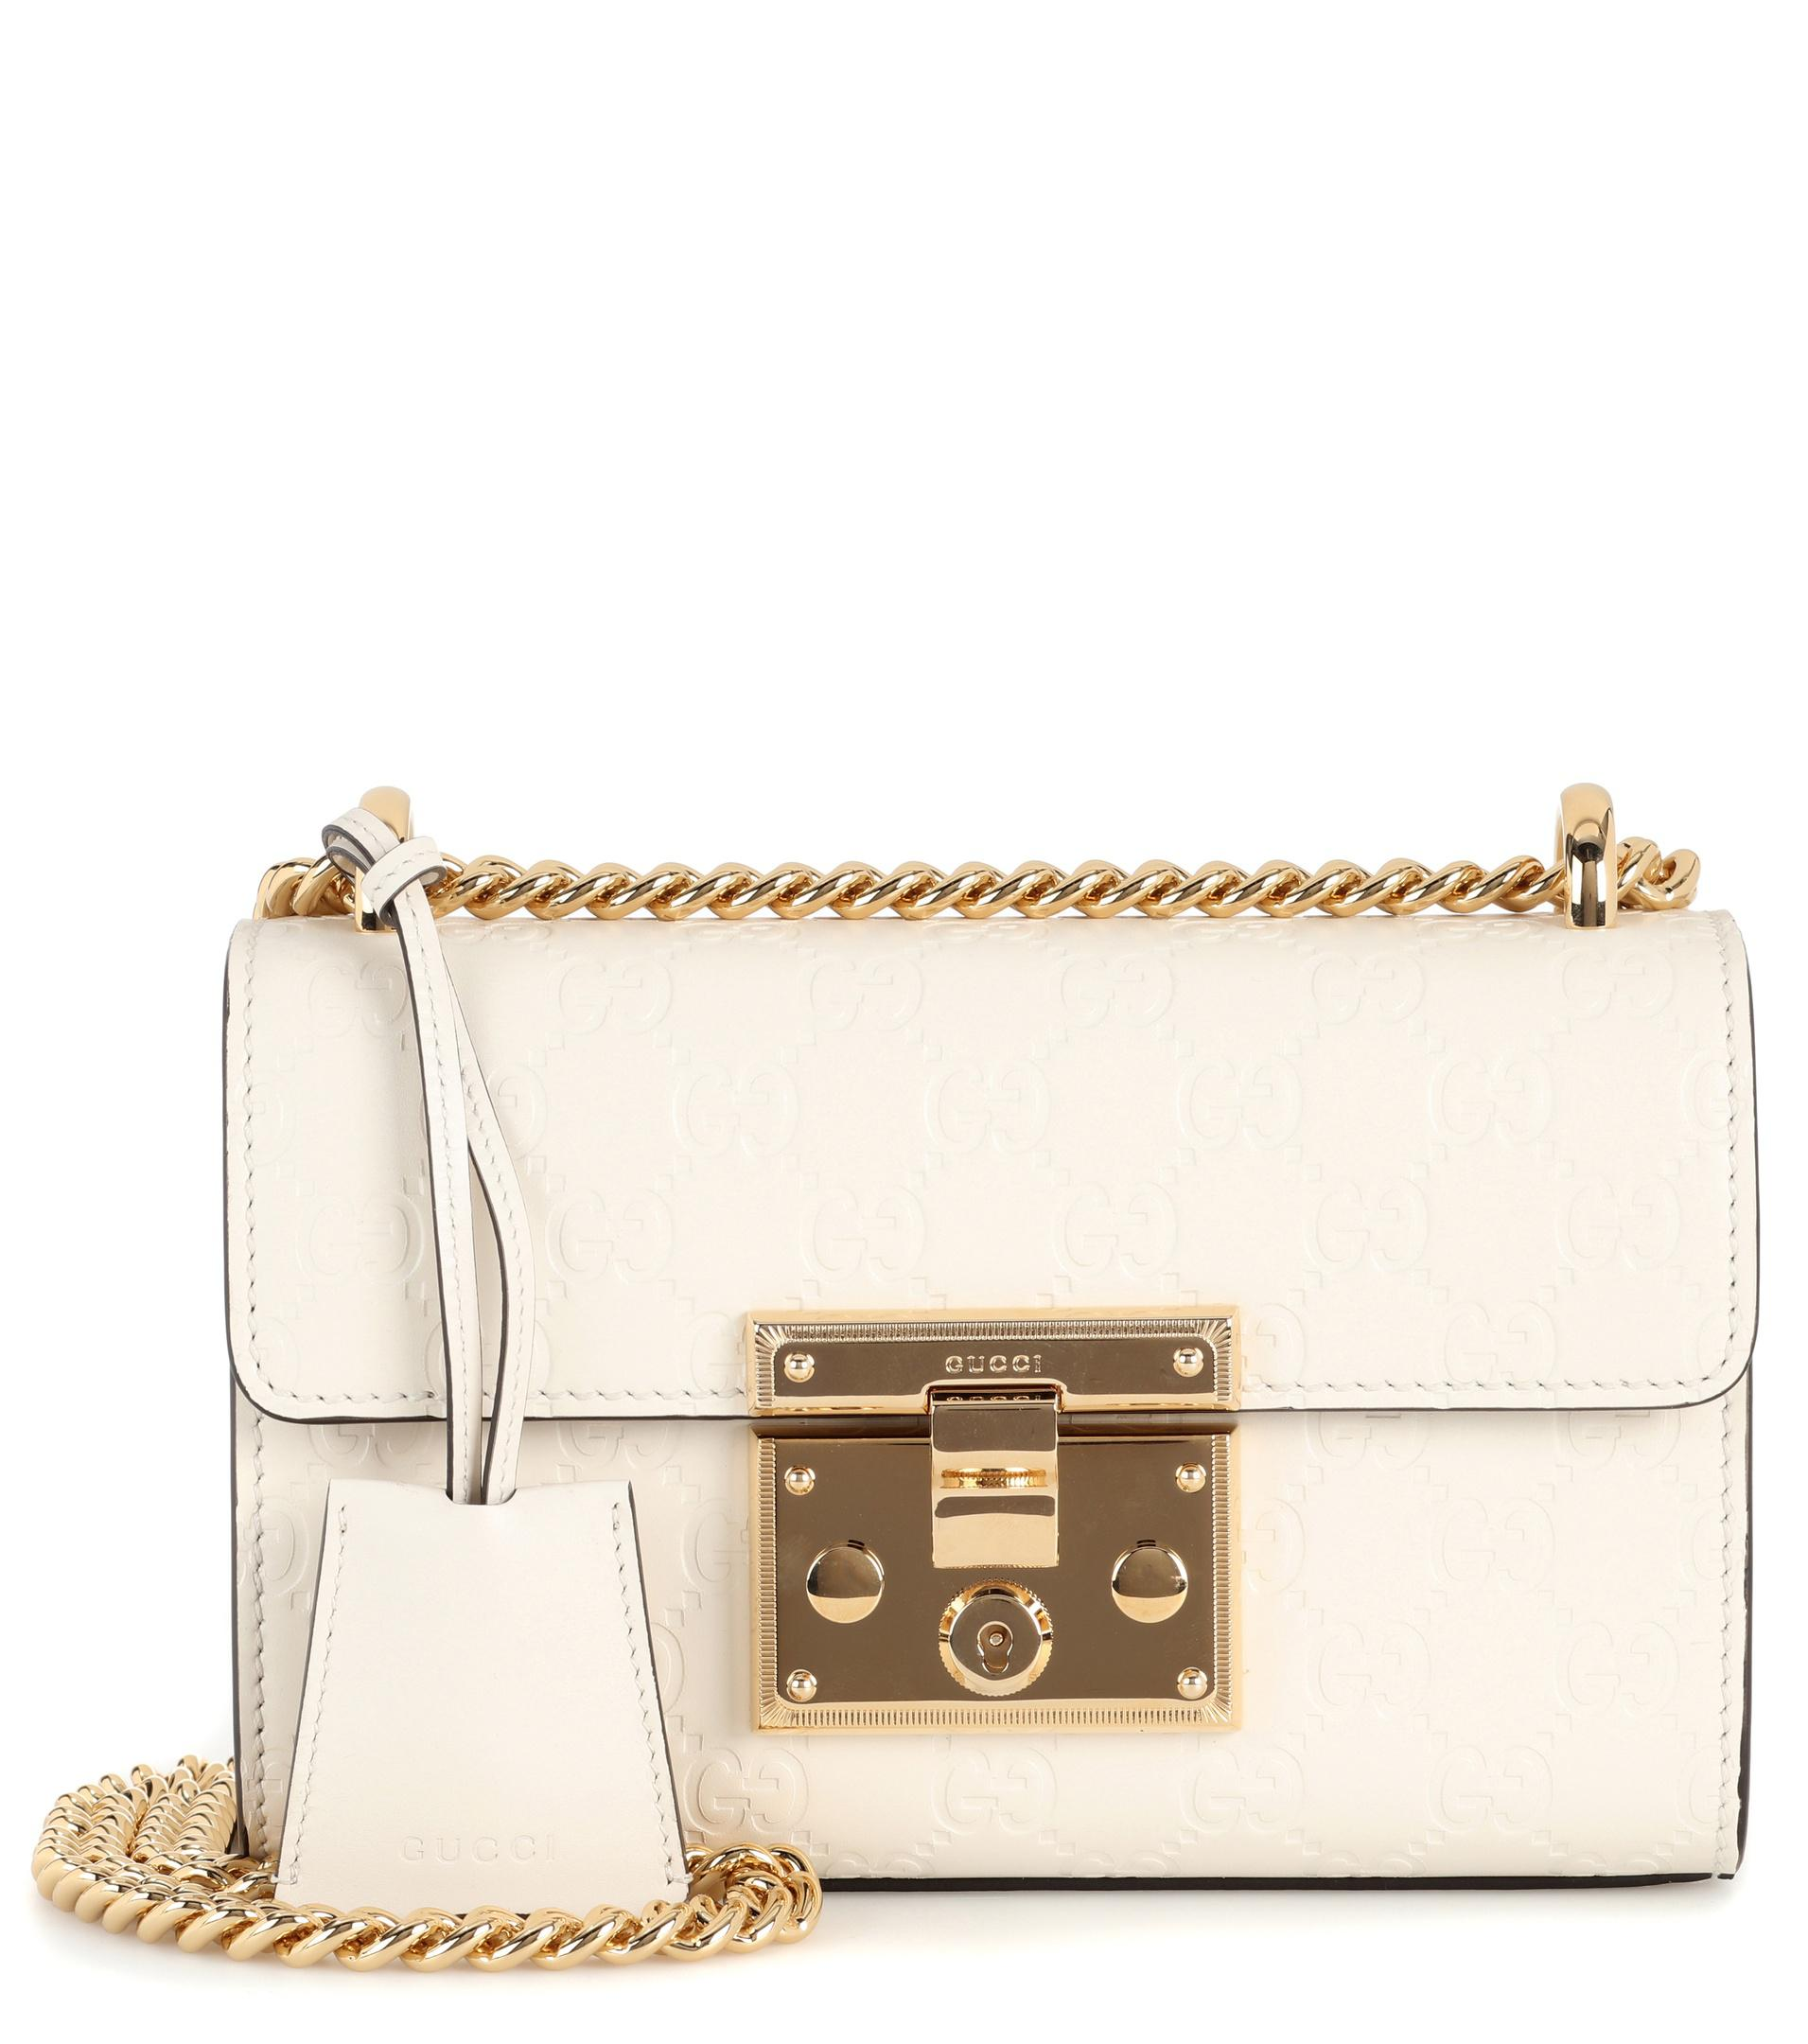 b7efe5a779d Gucci Padlock Small Leather Shoulder Bag in White - Lyst